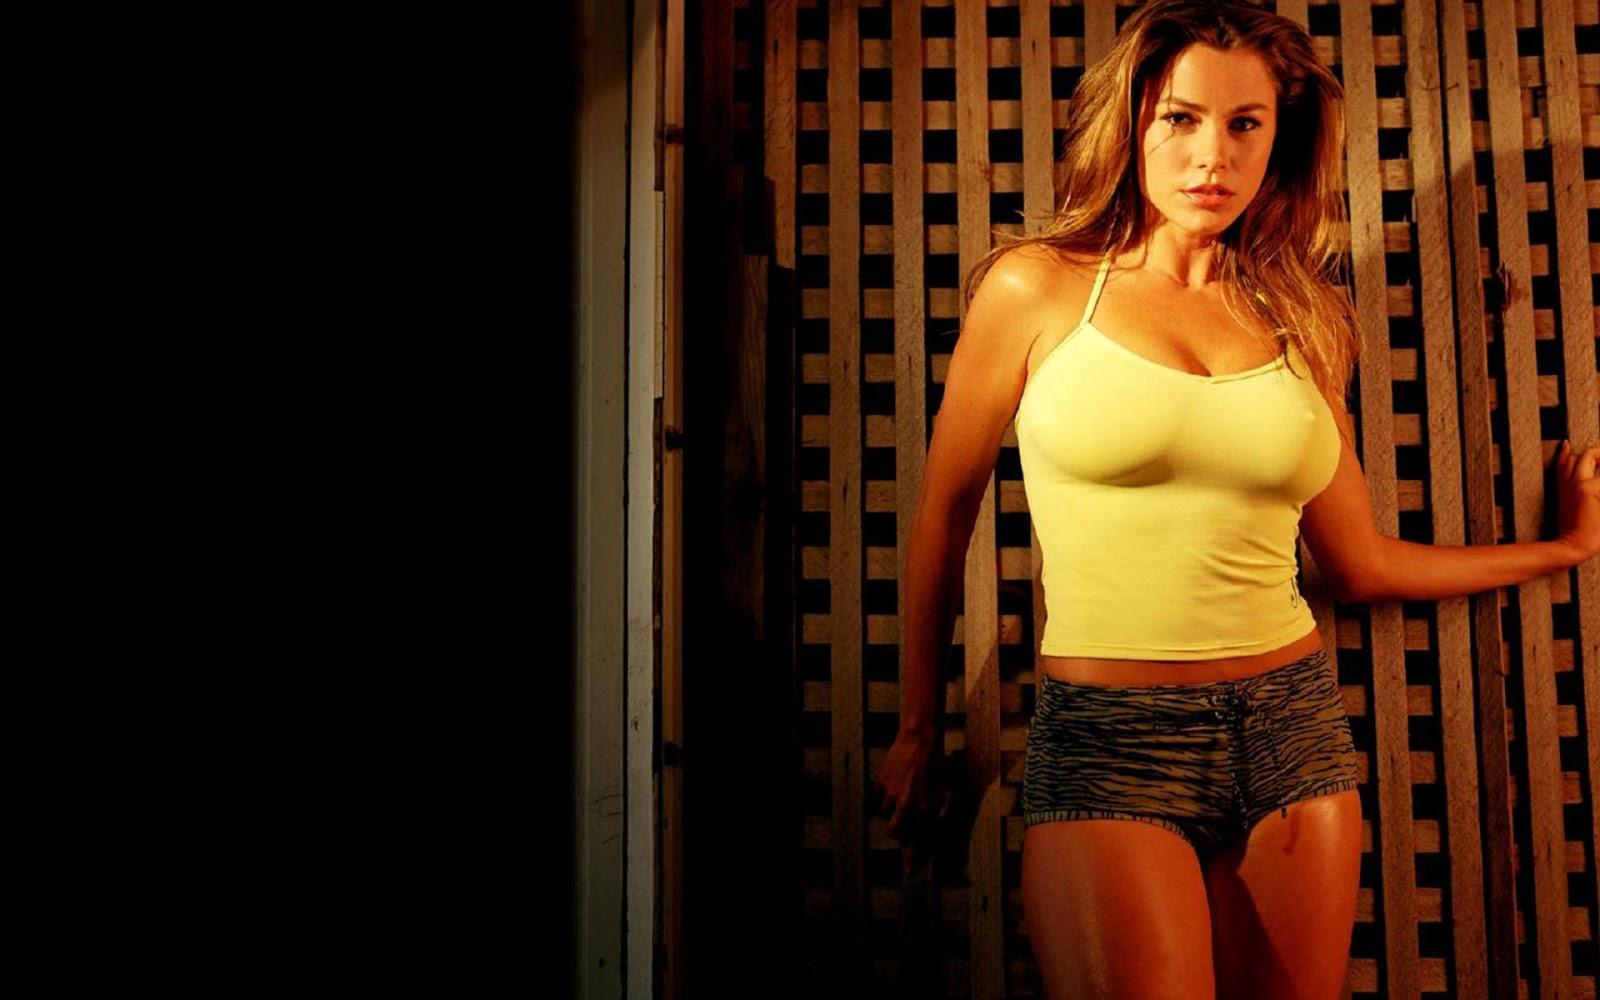 Sofia Vergara Soul Plane 30 43 Sofia Vergara Wallpaper In 2013 Full Hd Wallpapers